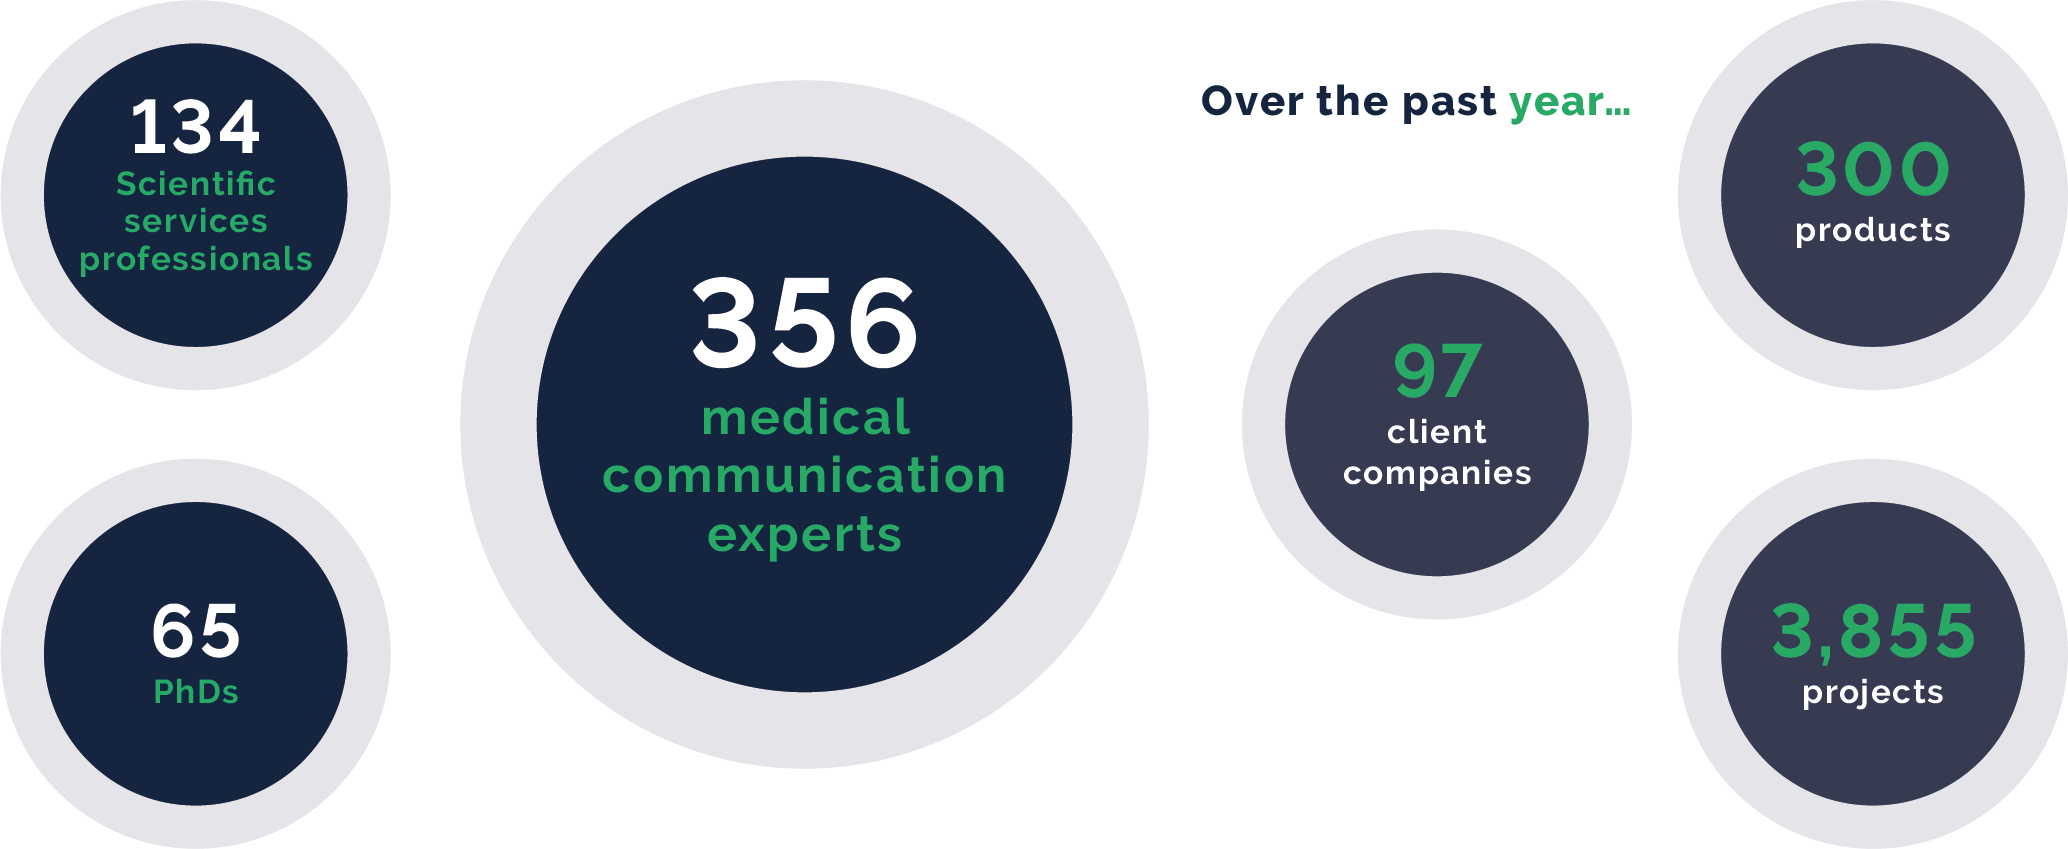 OPEN Health Medical Communications numbers infographic